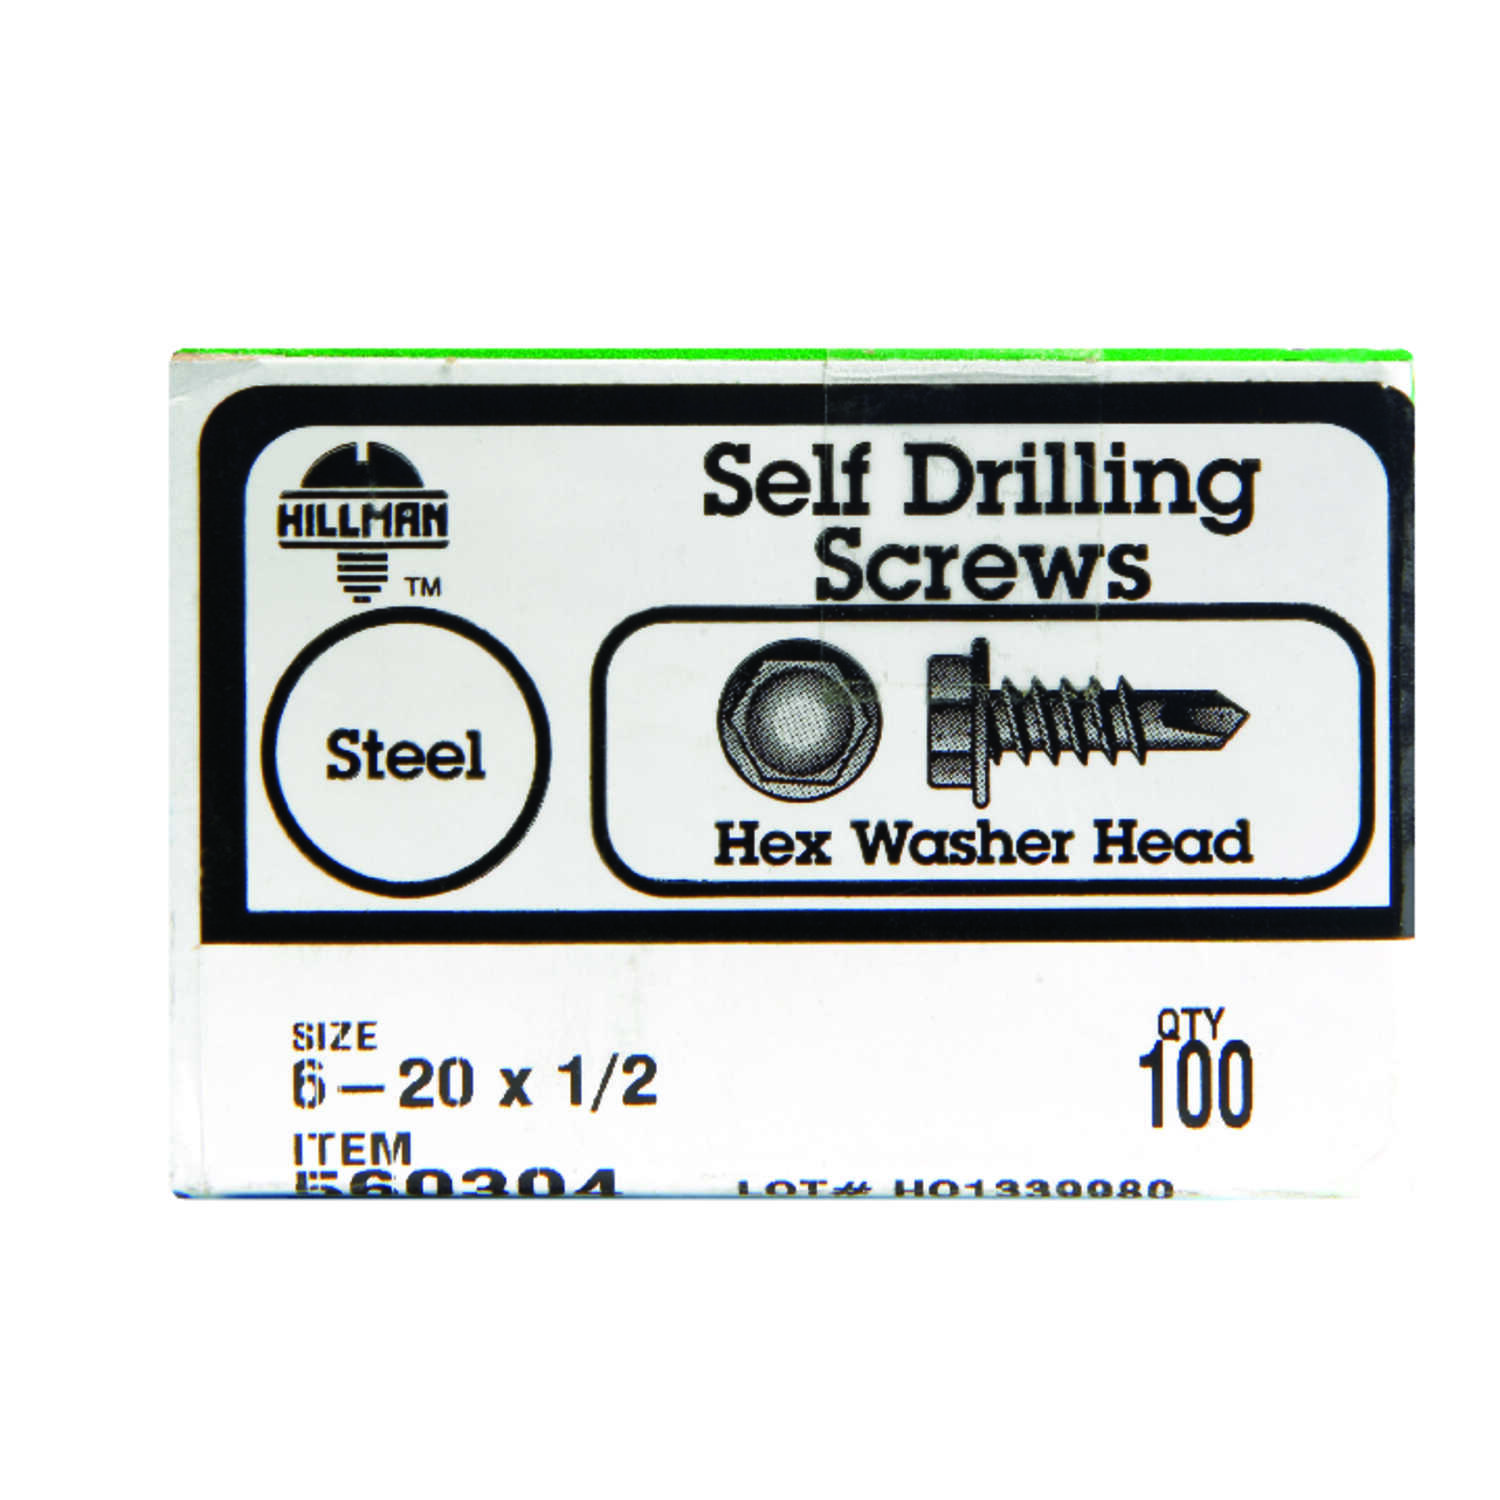 HILLMAN  6-20   x 1/2 in. L Zinc-Plated  Hex Washer Head Self- Drilling Screws  100 per box Steel